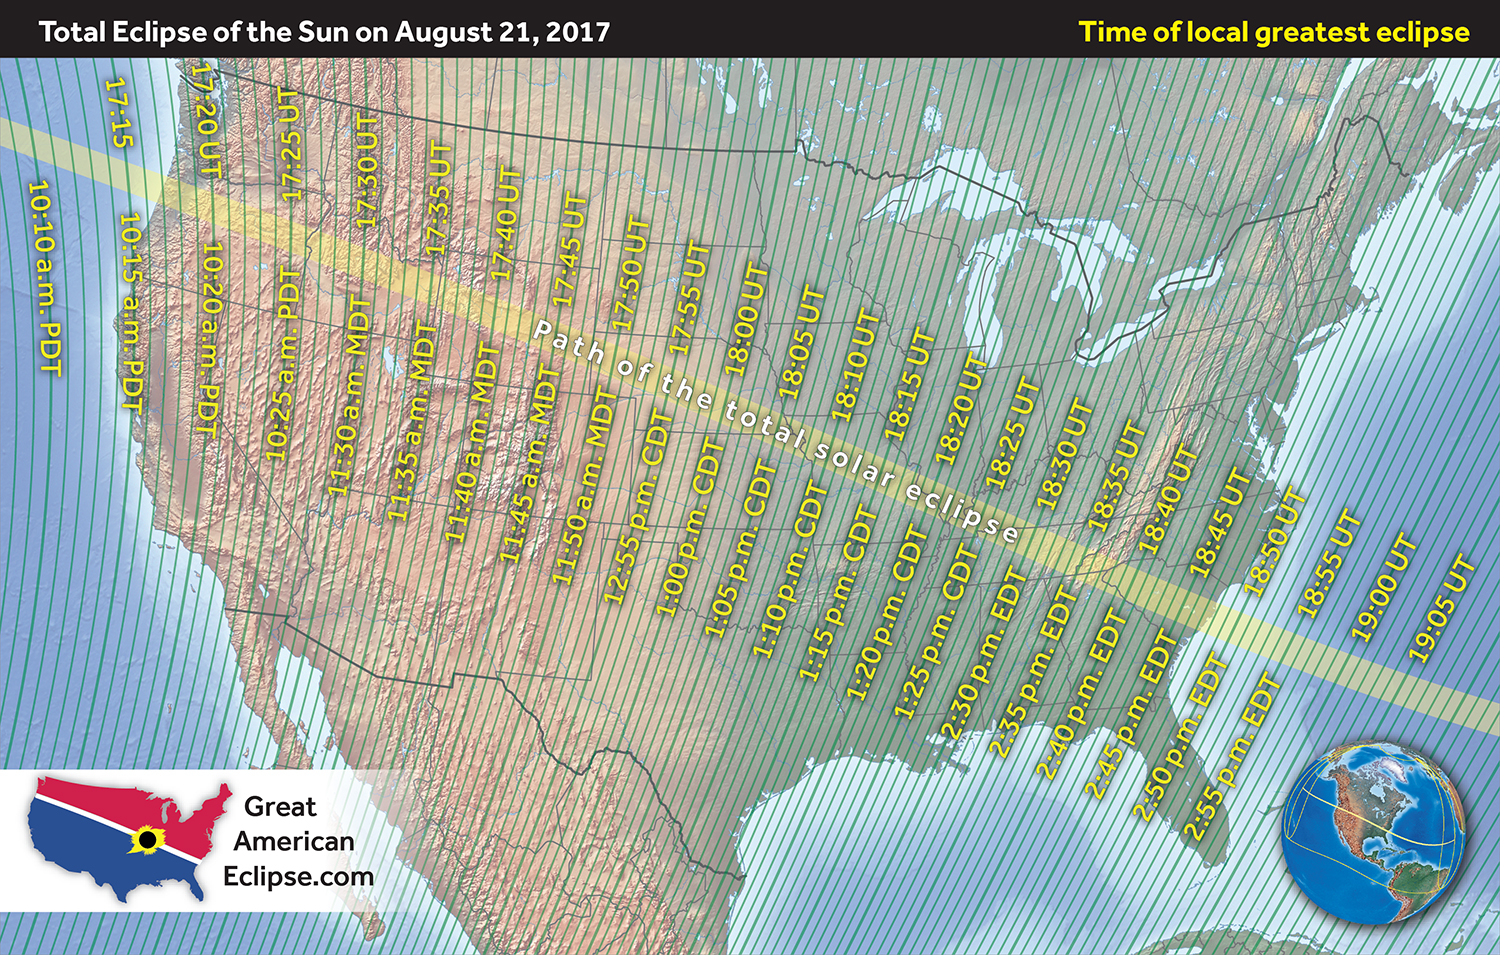 Aug. 21 - Total Eclipse of the Sun